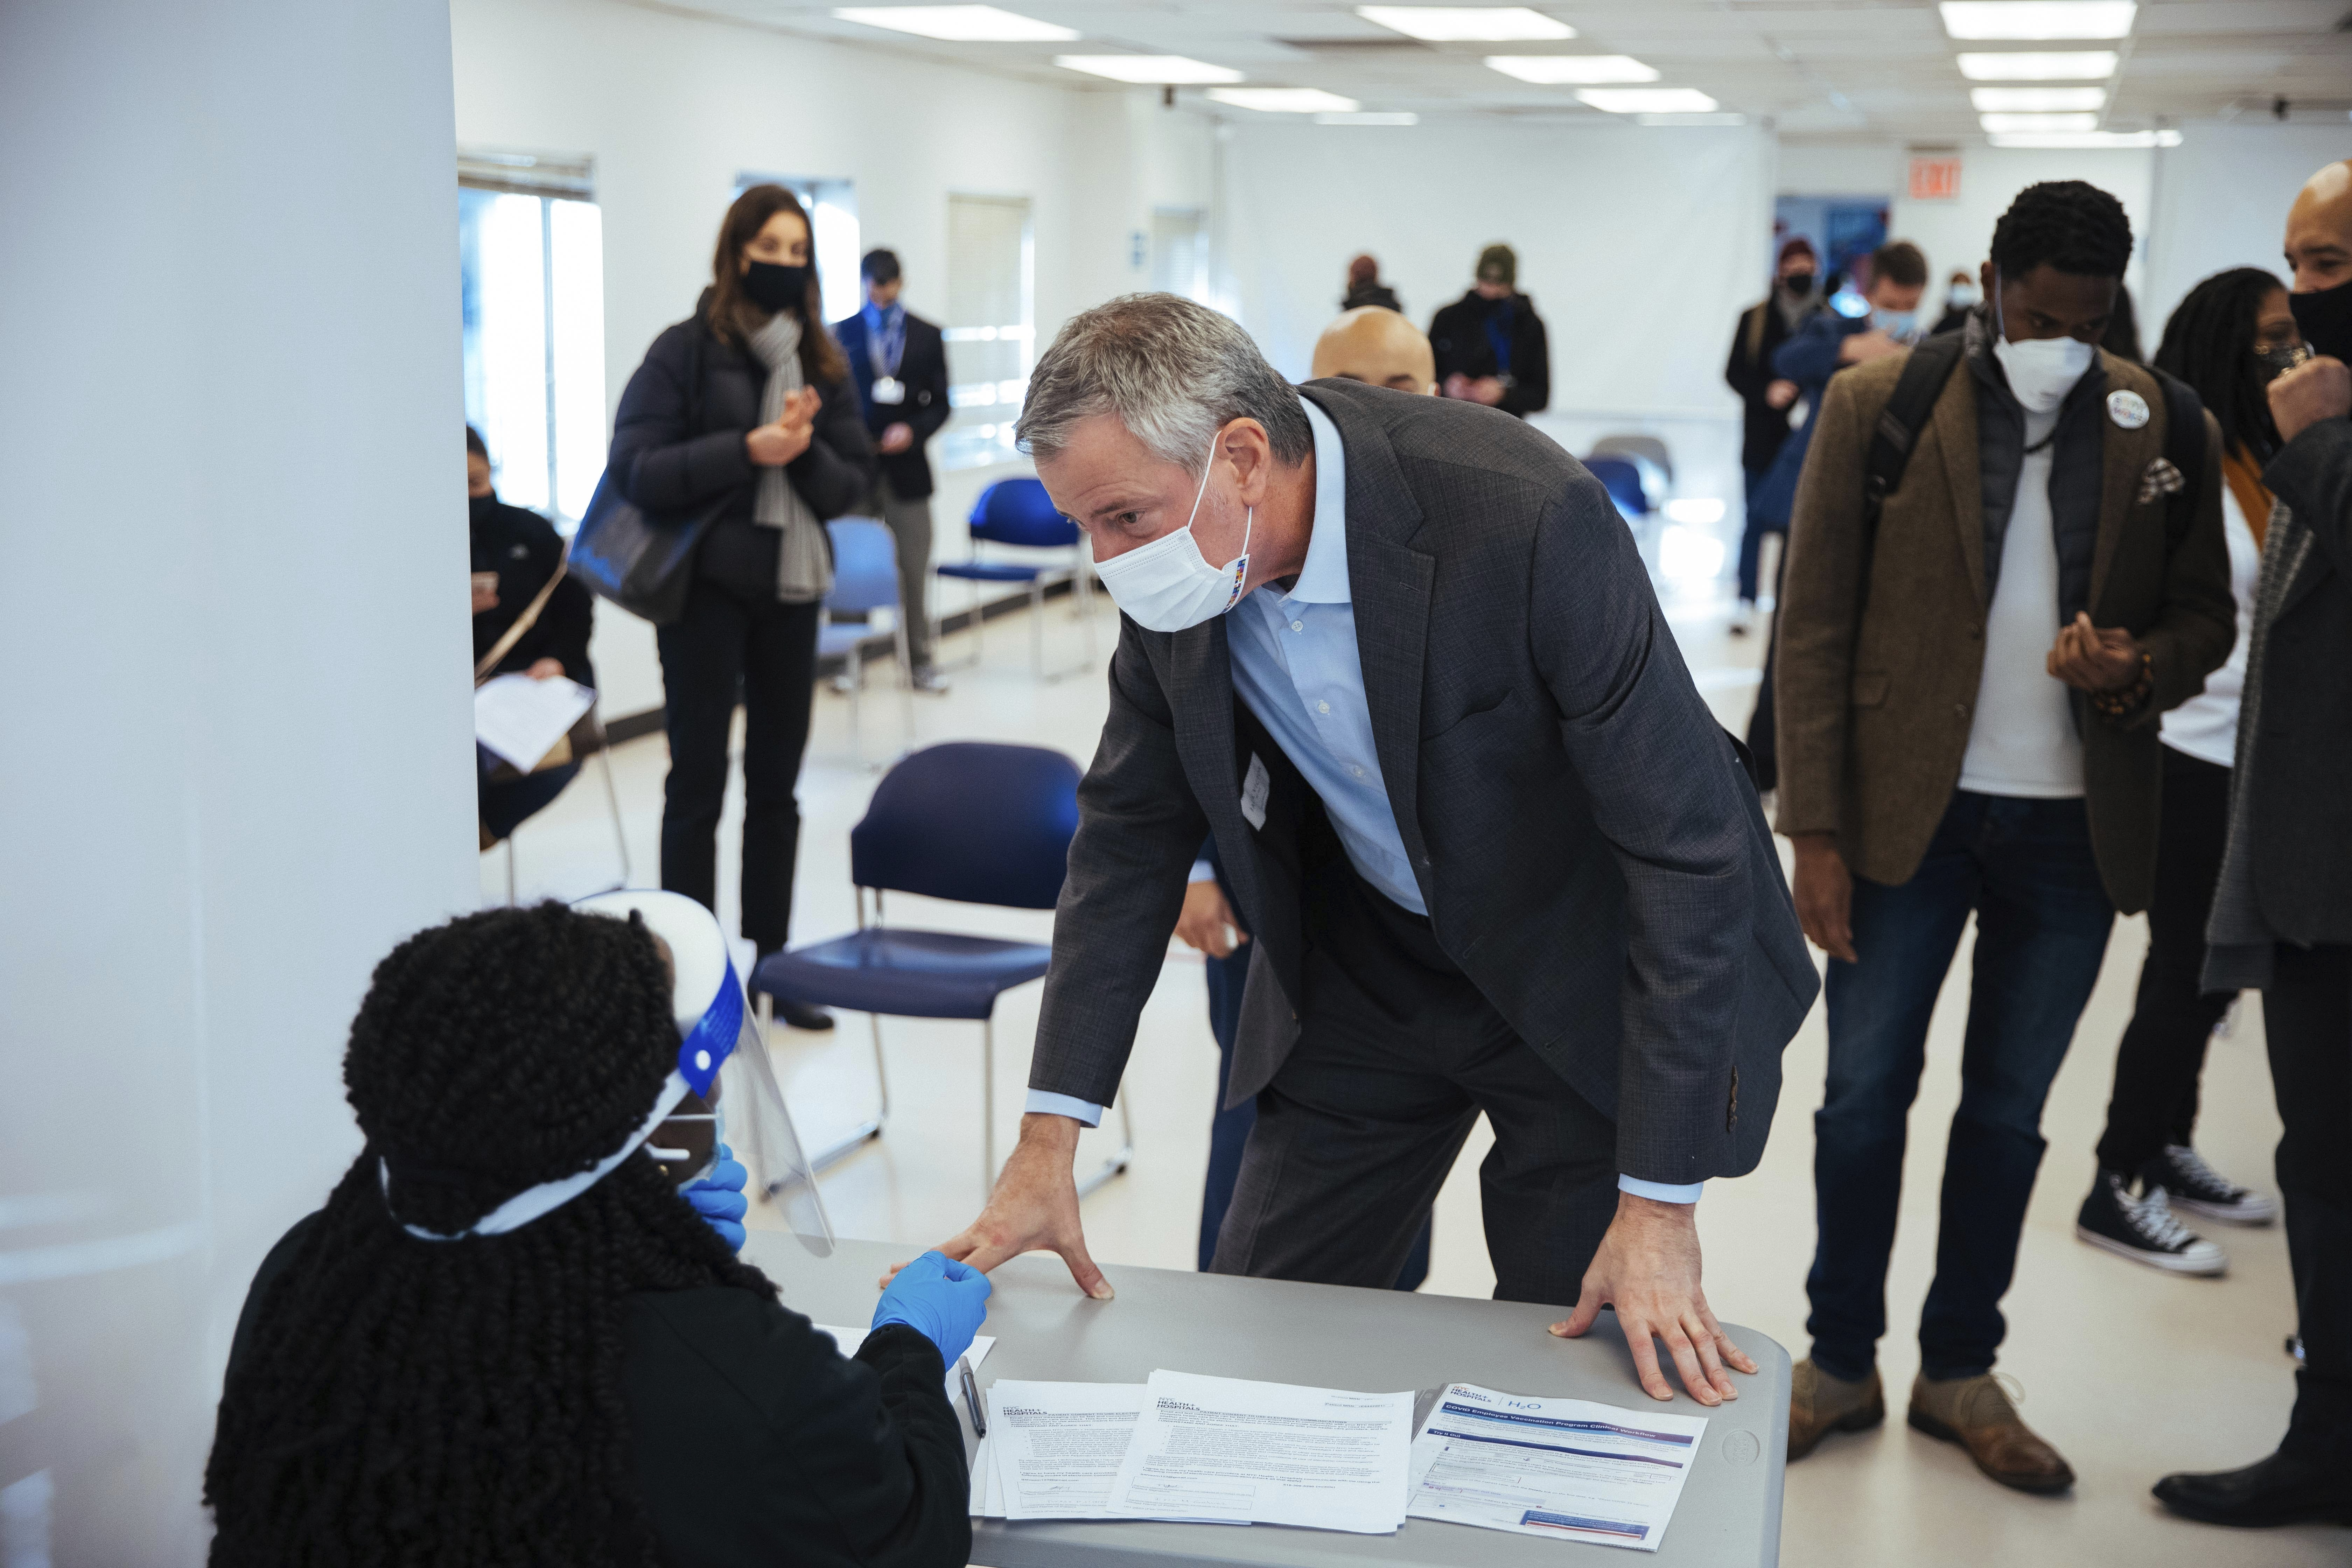 Mayor Bill de Blasio talks to staff during his visit to the Bathgate Post Office vaccination facility, in the Bronx on January 10th, 2021.